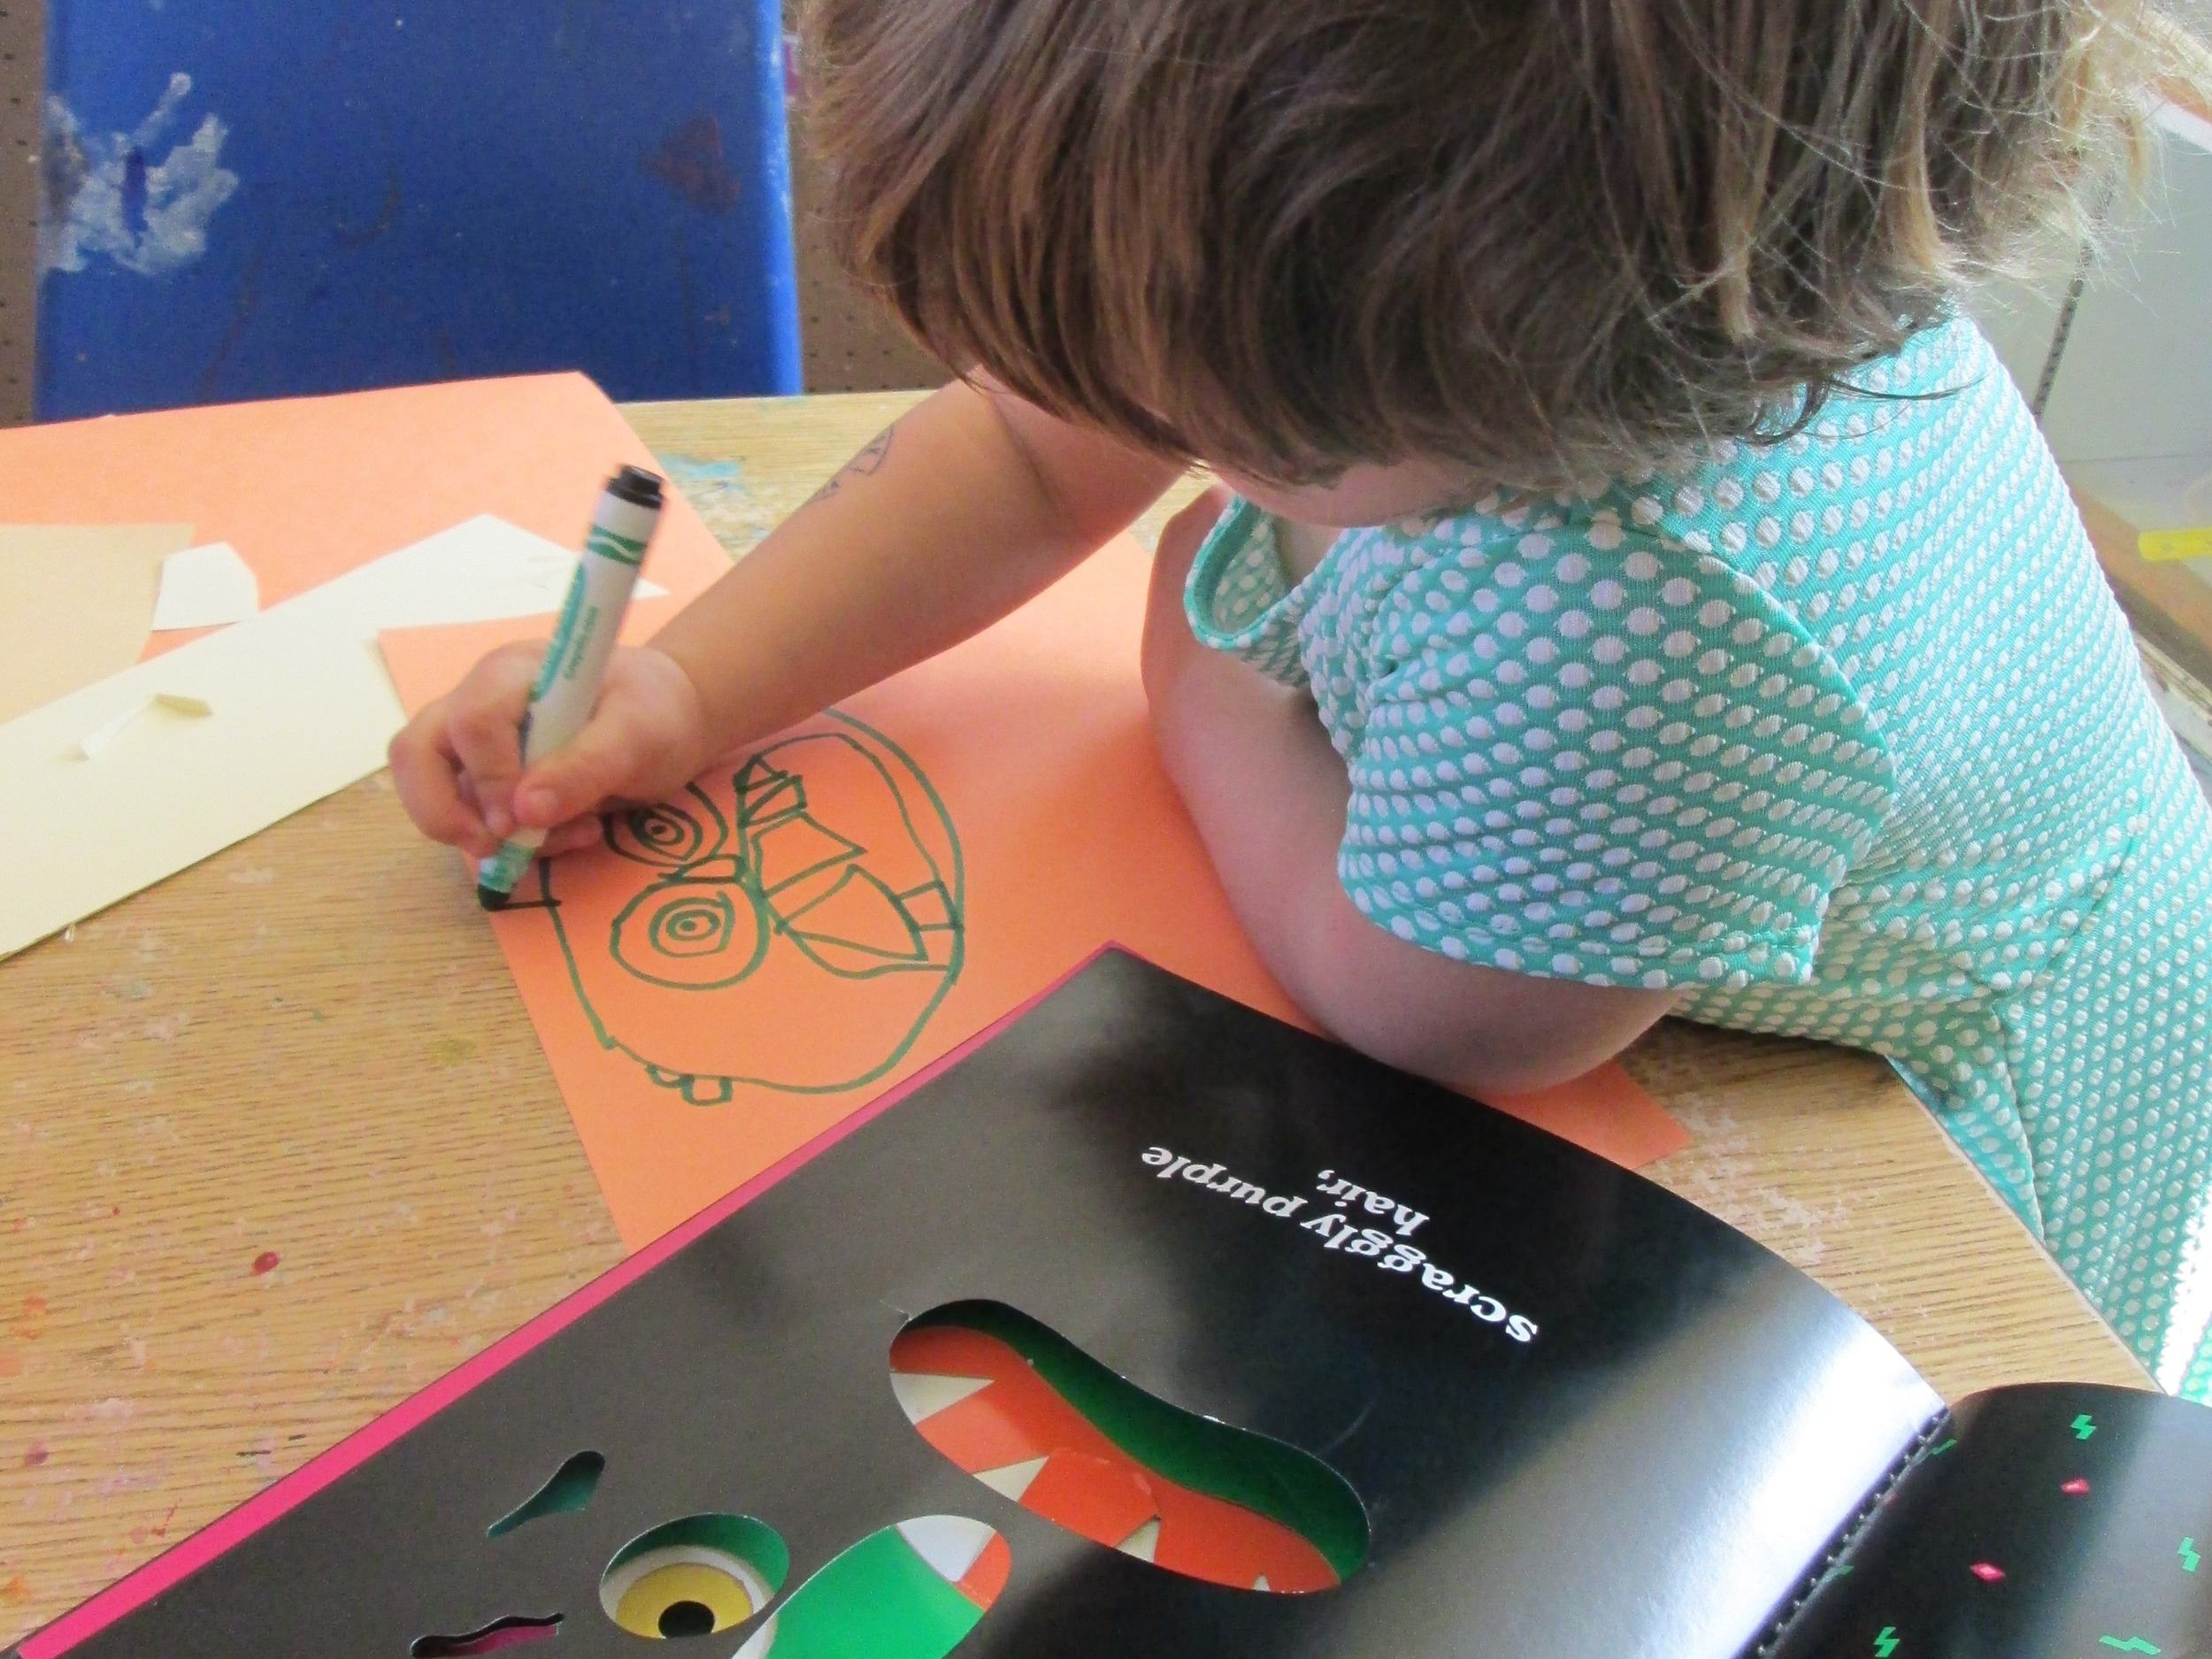 The kids worked with great care and attention as they referenced the book and tried to draw their own monsters.